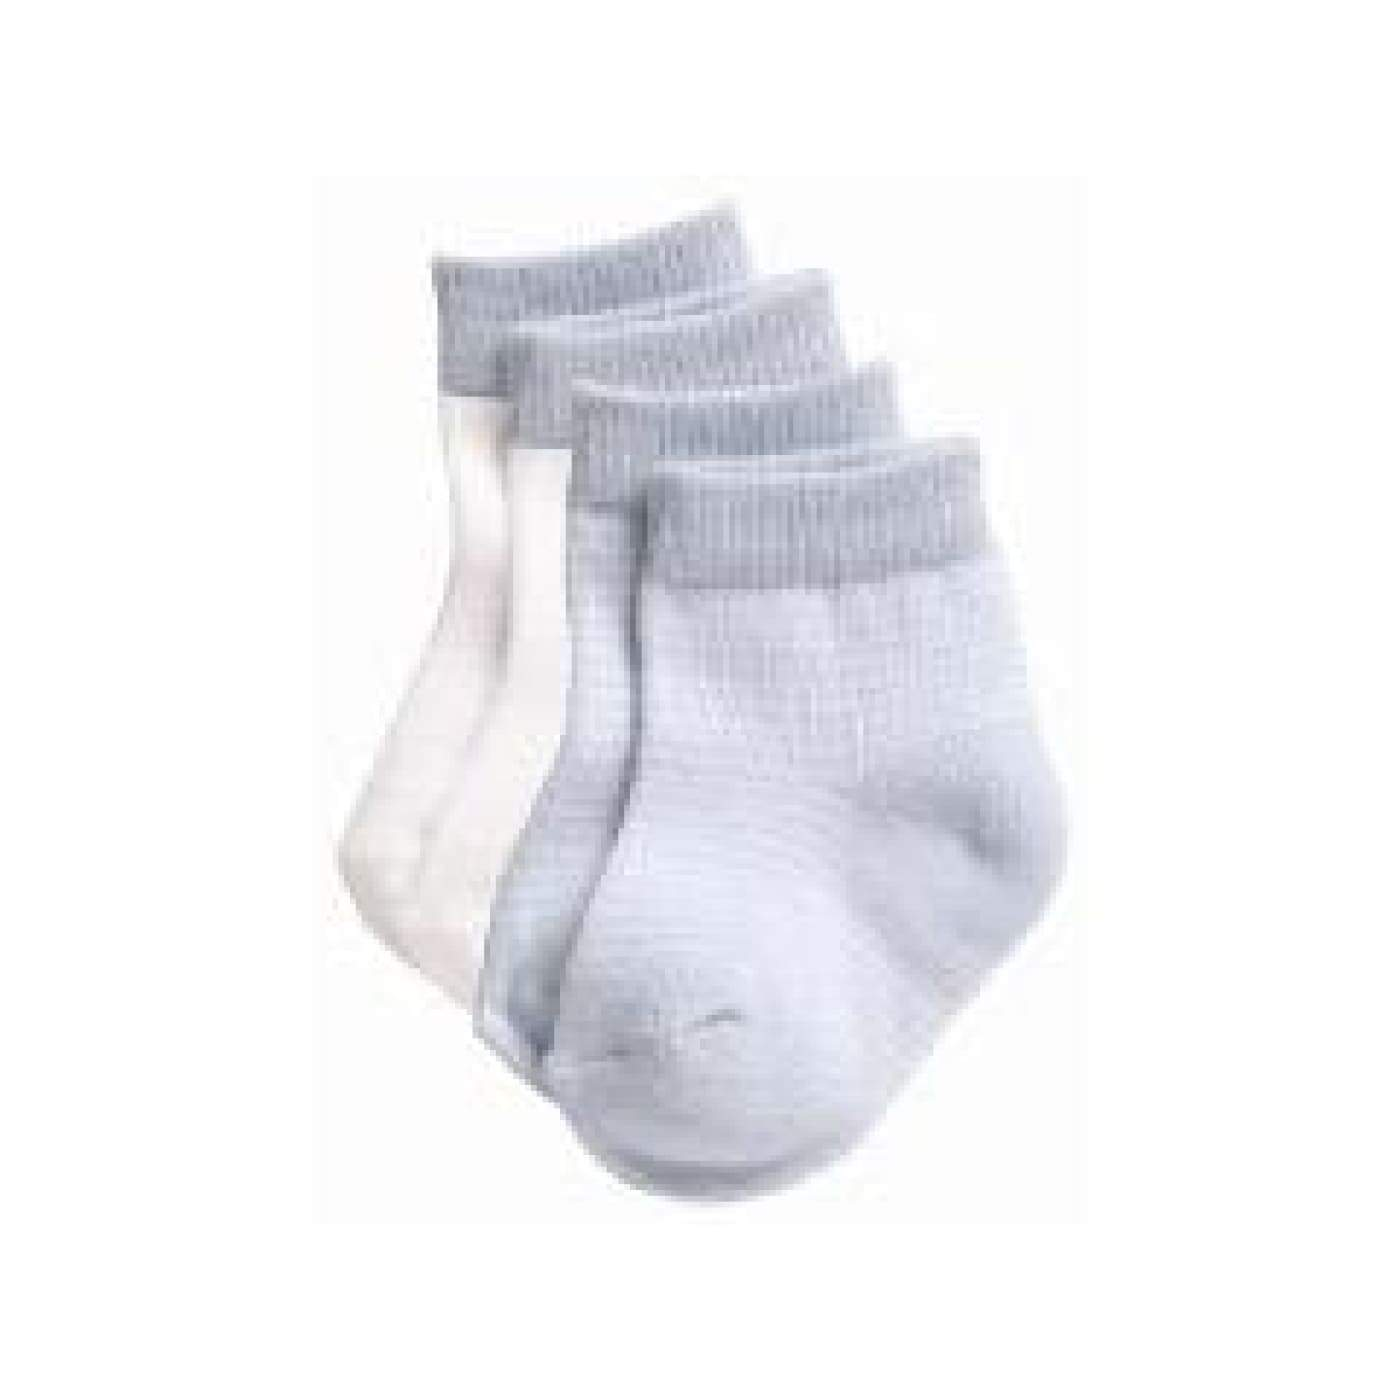 Playette Preemie Fashion Socks - Blue/White 3PK - BABY & TODDLER CLOTHING - MITTENS/SOCKS/SHOES